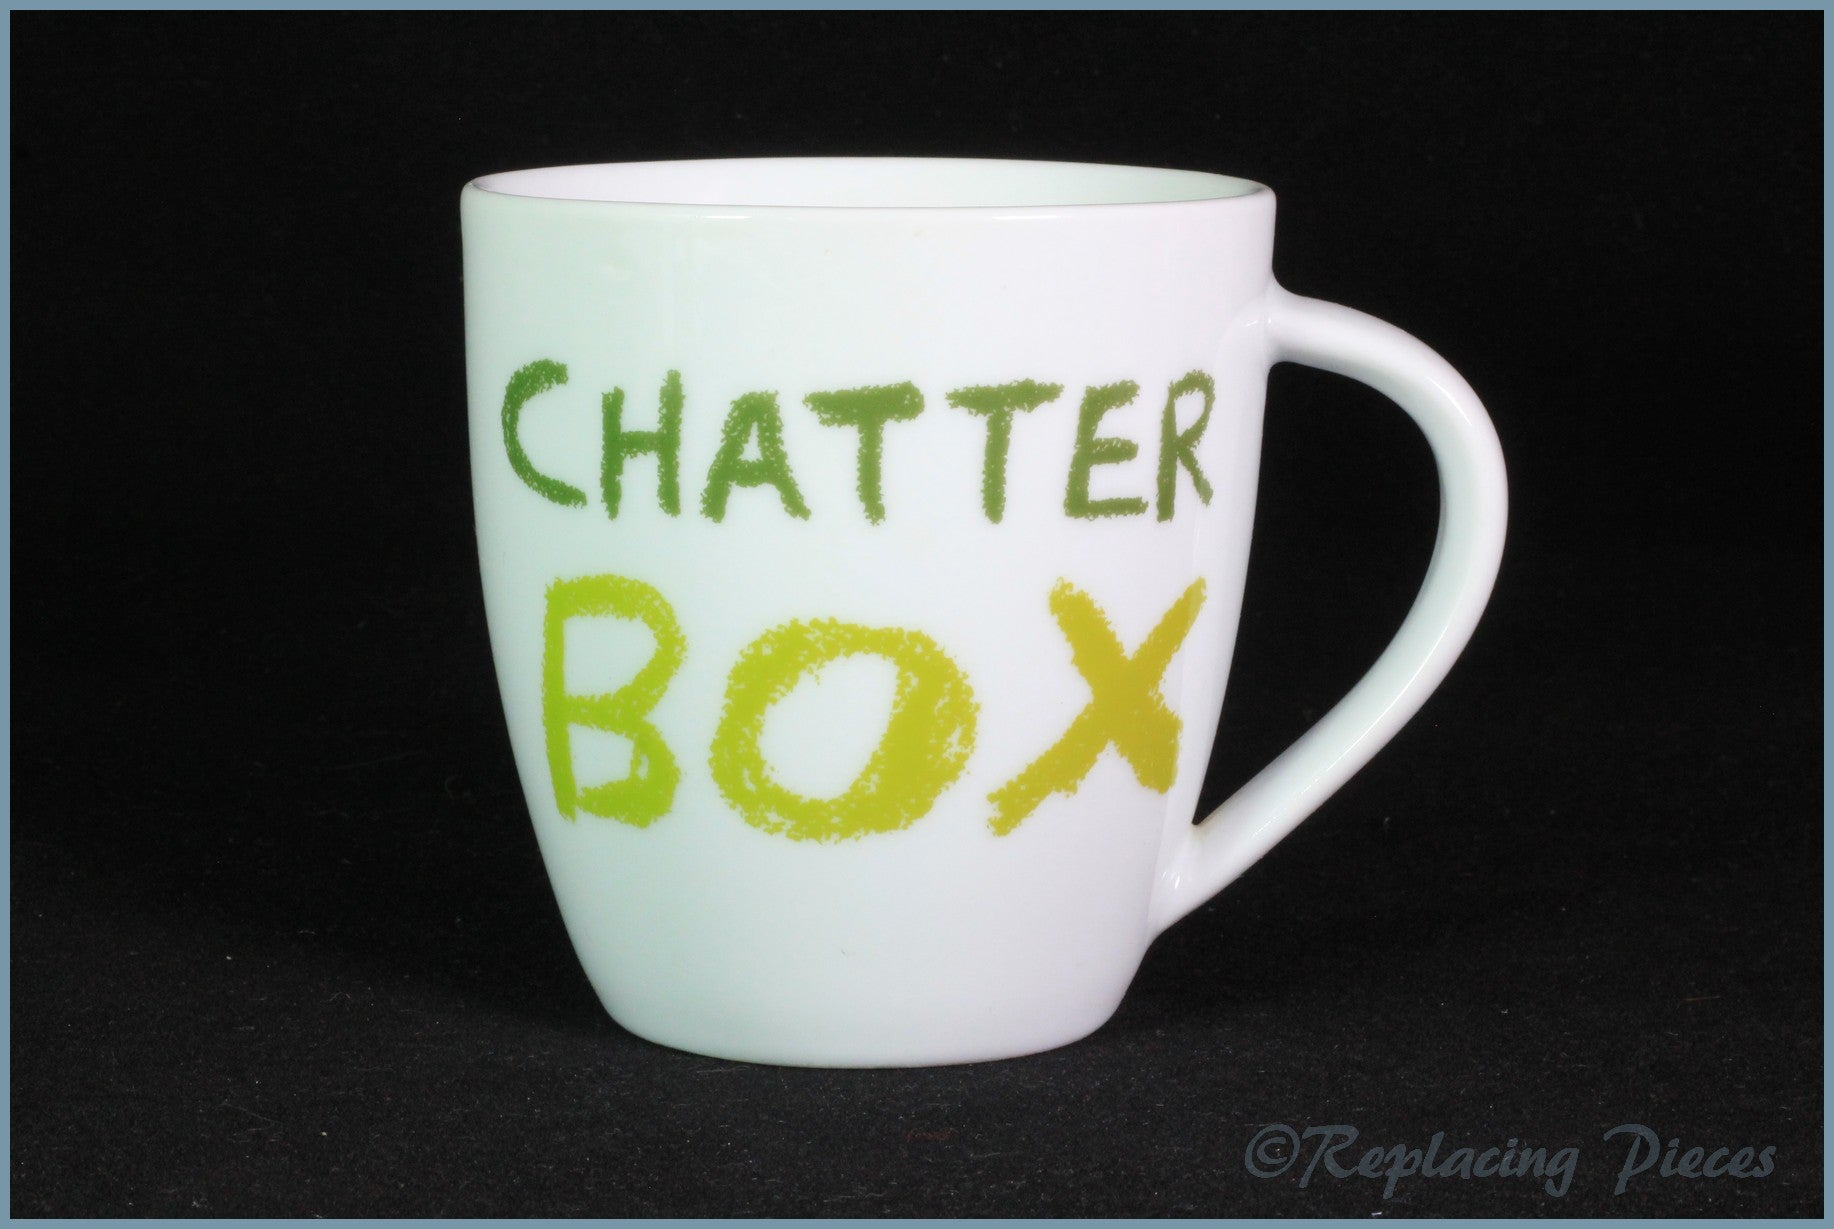 Queens - Jamie Oliver Mugs - Chatter Box